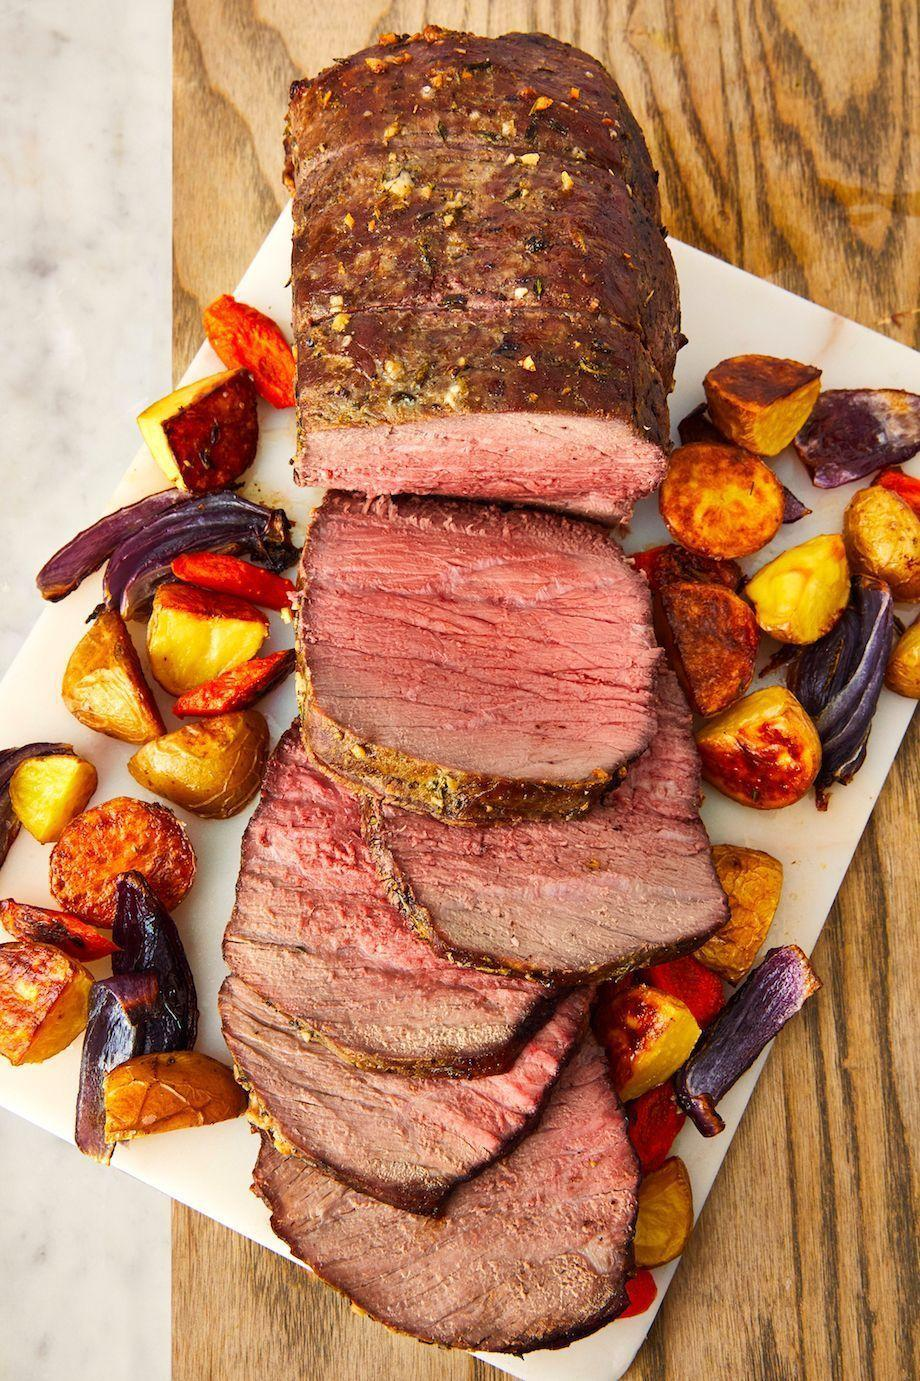 """<p>Roast <a href=""""http://delish.prod.hearstapps.com/uk/beef-recipes/"""" rel=""""nofollow noopener"""" target=""""_blank"""" data-ylk=""""slk:beef"""" class=""""link rapid-noclick-resp"""">beef</a> might sound fancy and complicated to make, but it's actually quite simple! With a good piece of meat and some simple herbs, you can have roast beef that's way more tender and flavourful than the store-bought kind.</p><p>Get the <a href=""""https://www.delish.com/uk/cooking/recipes/a28926155/perfect-roast-beef-recipe/"""" rel=""""nofollow noopener"""" target=""""_blank"""" data-ylk=""""slk:Roast Beef"""" class=""""link rapid-noclick-resp"""">Roast Beef</a> recipe.</p>"""